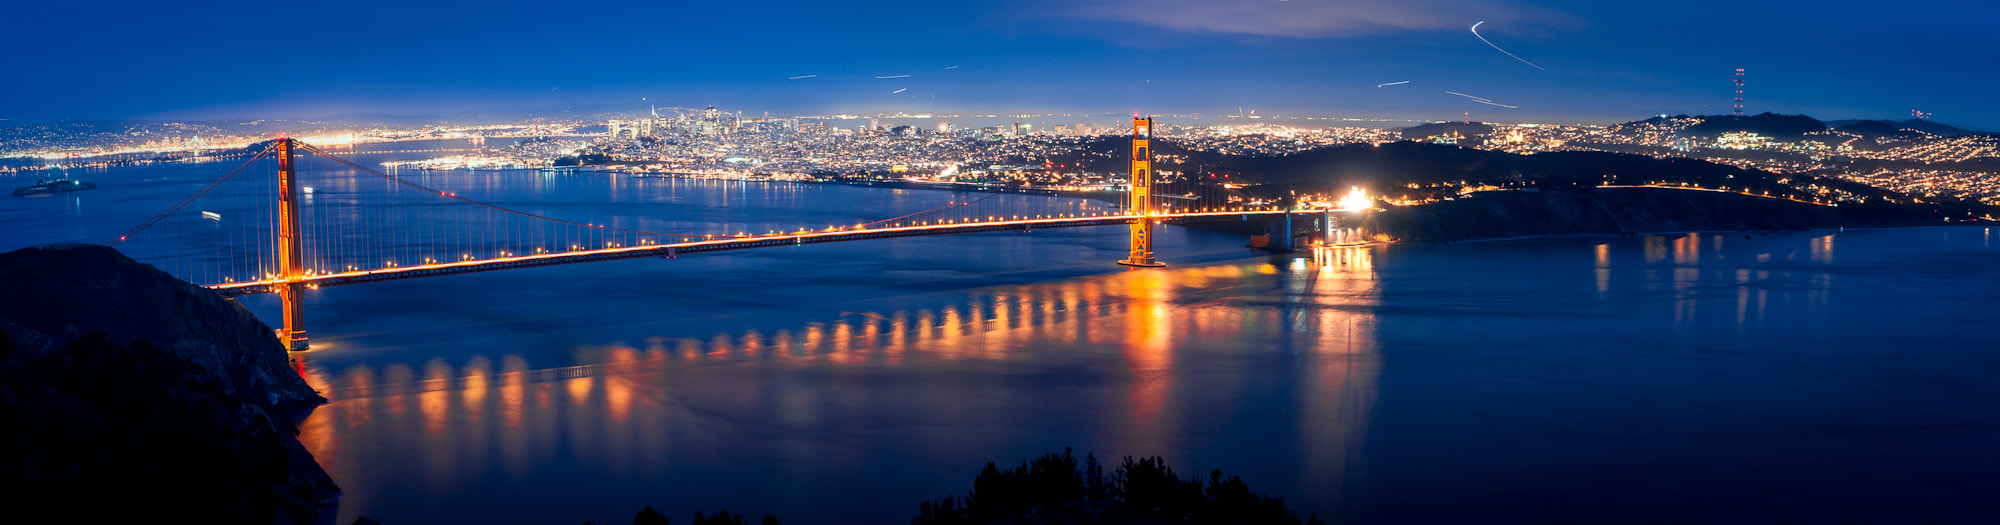 Photograph The Golden Gate at Dusk, Marin Headlands by Craig Hudson on 500px